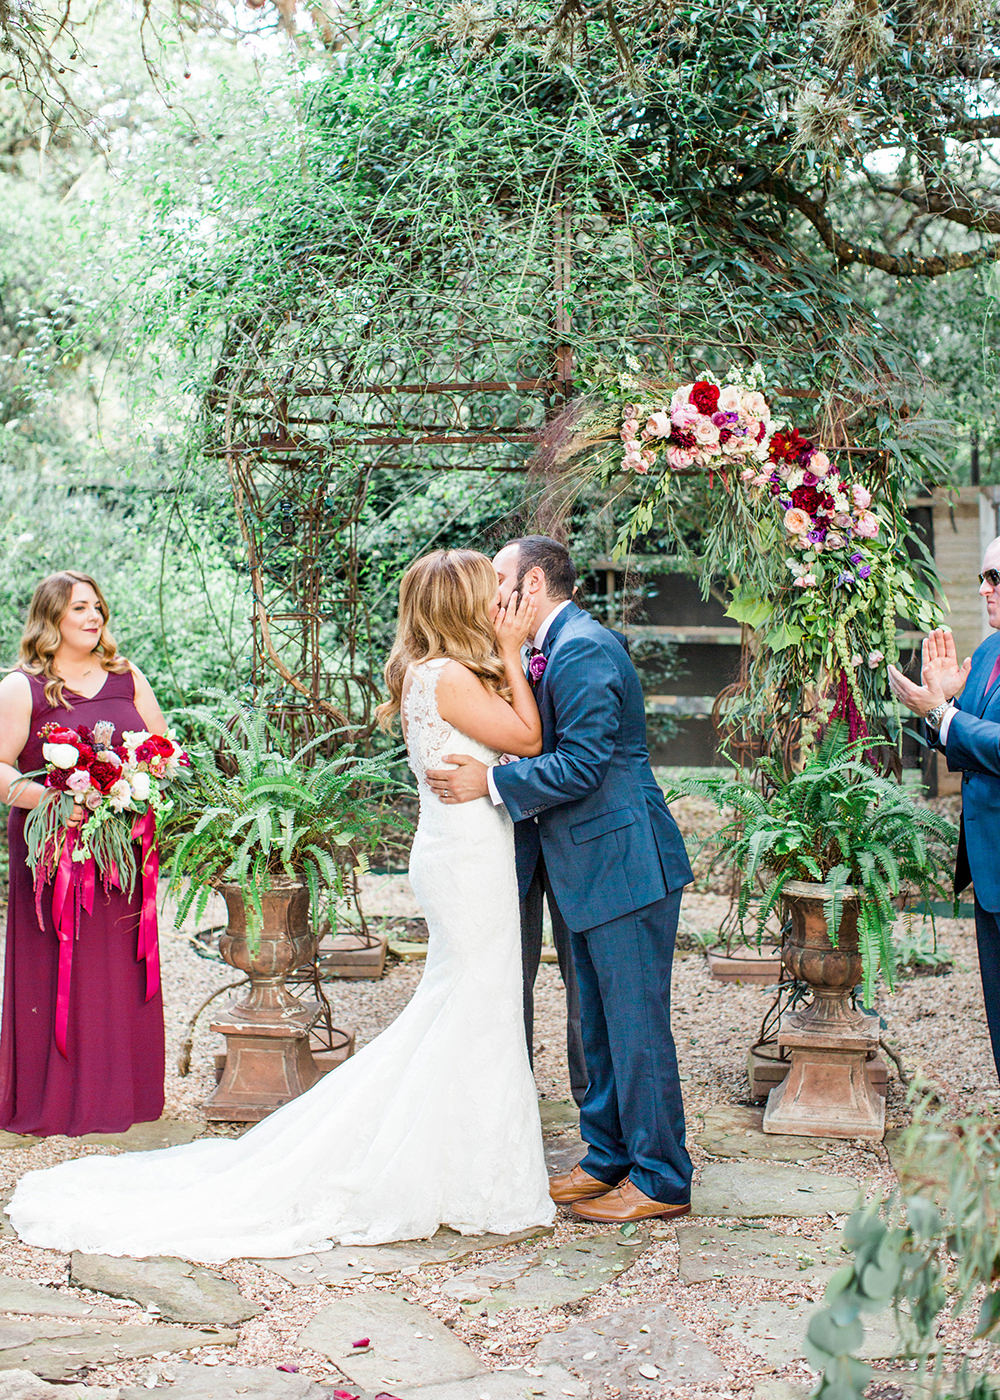 ceremony kiss - photo by Honey Gem Creative http://ruffledblog.com/hill-country-garden-wedding